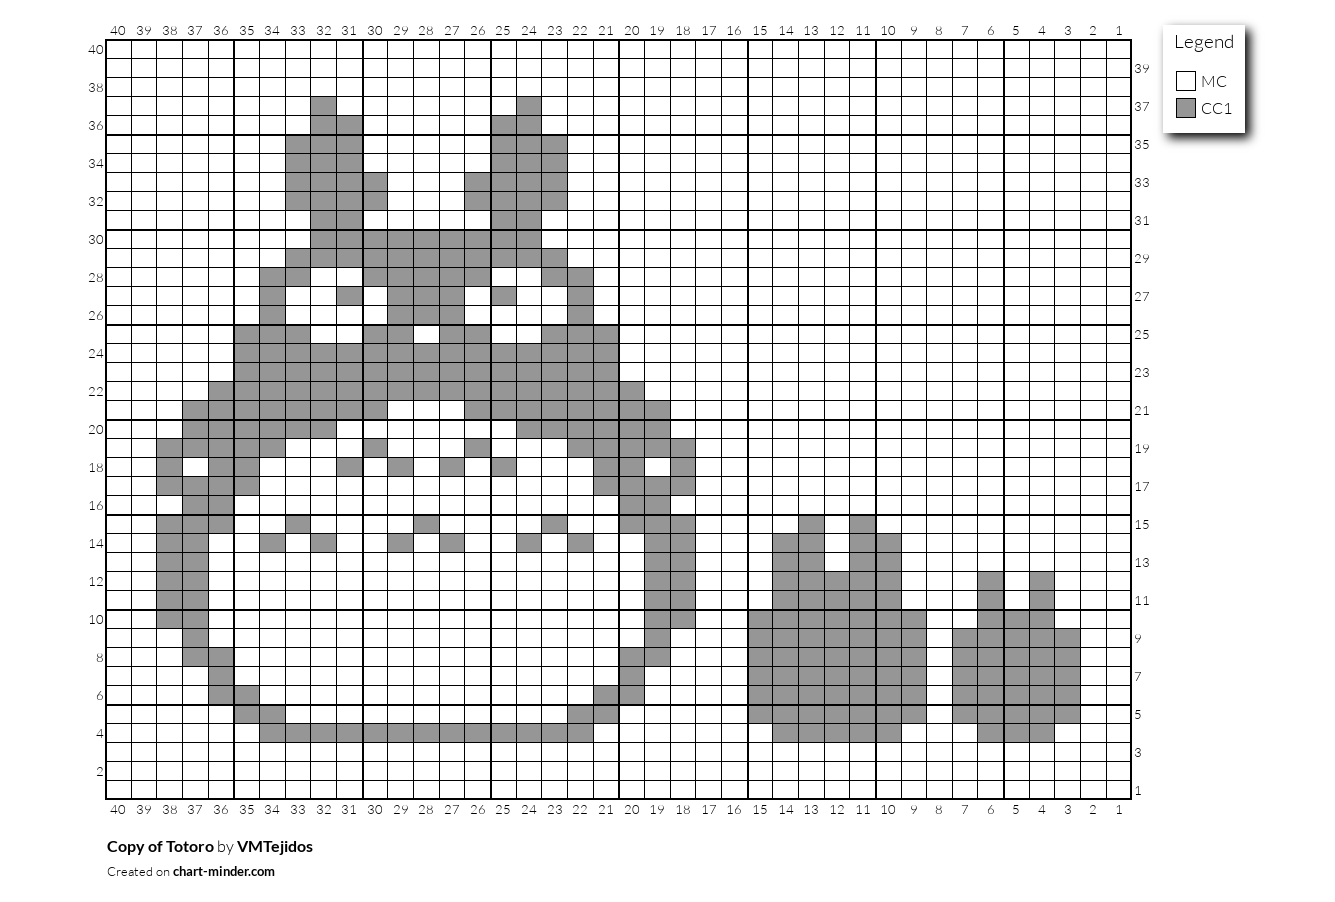 Copy of Totoro